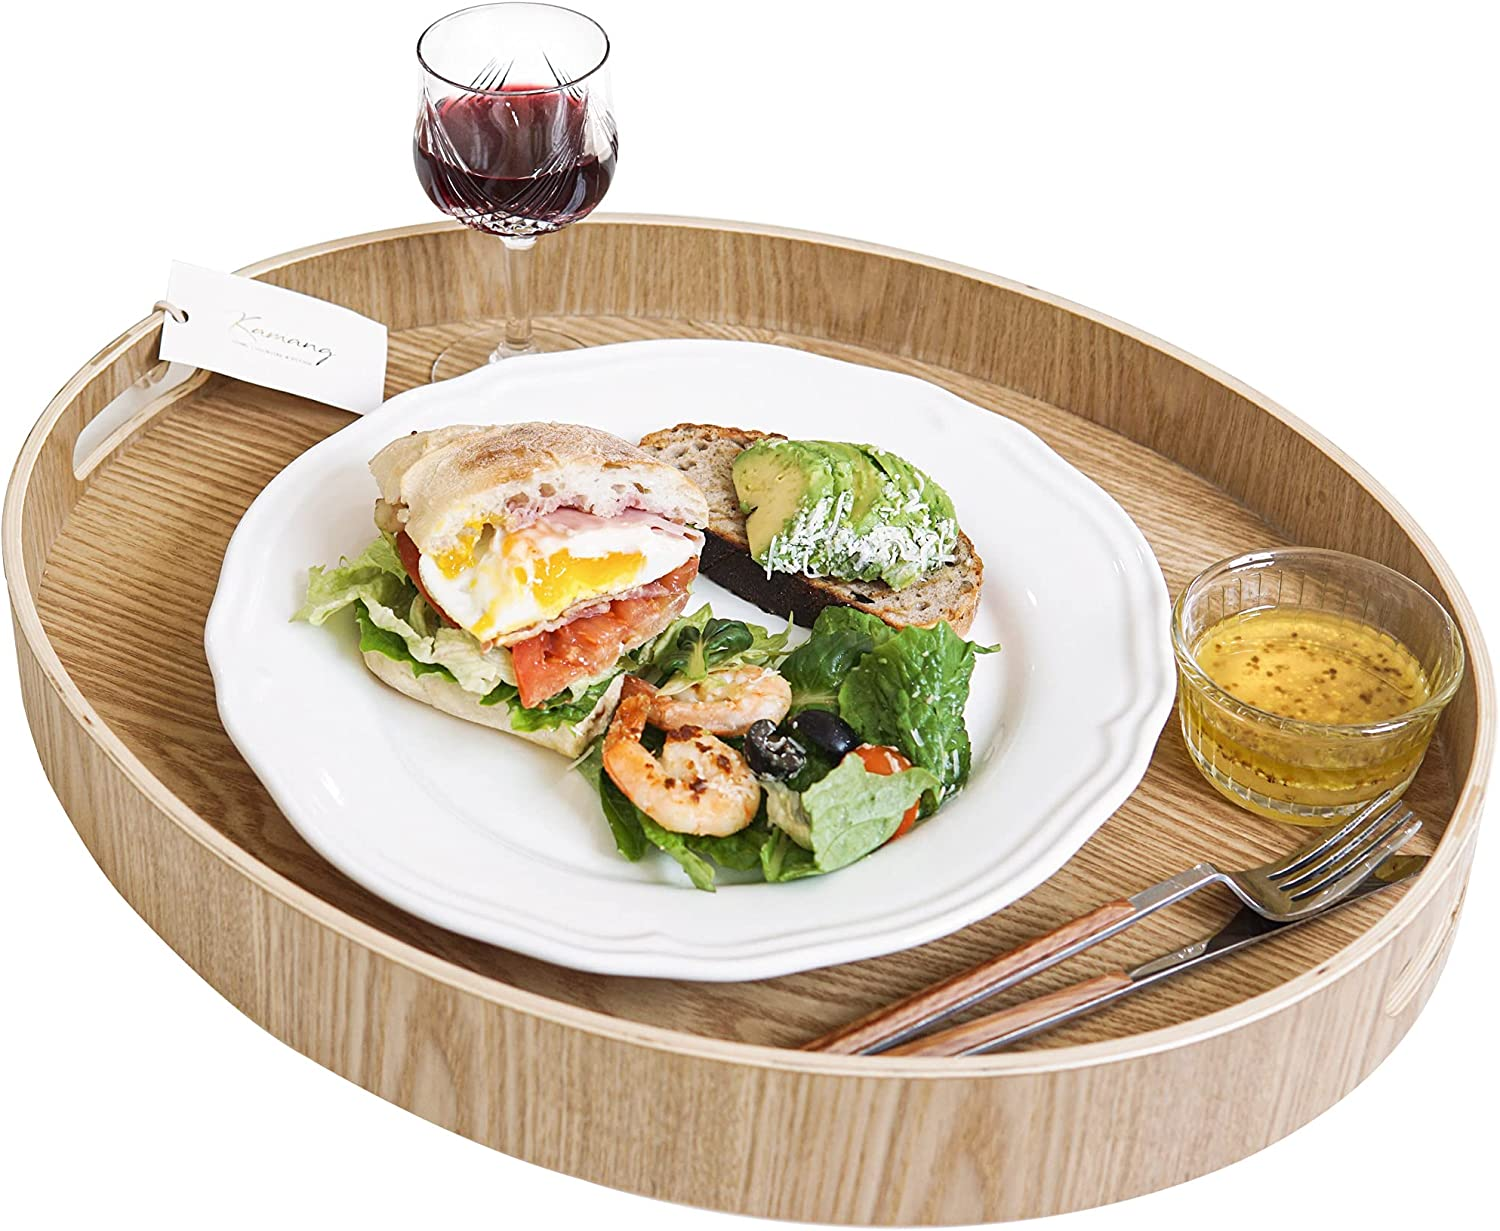 """Nonslip Wood Serving Tray with Handles for Serving Food and Drinks. 18"""" Oval Round Large Tray for Ottoman. Anti-Slip Food Serving Tray with Handles. Wooden Nonslip Food Serving Trays (18"""" Oval Round)"""